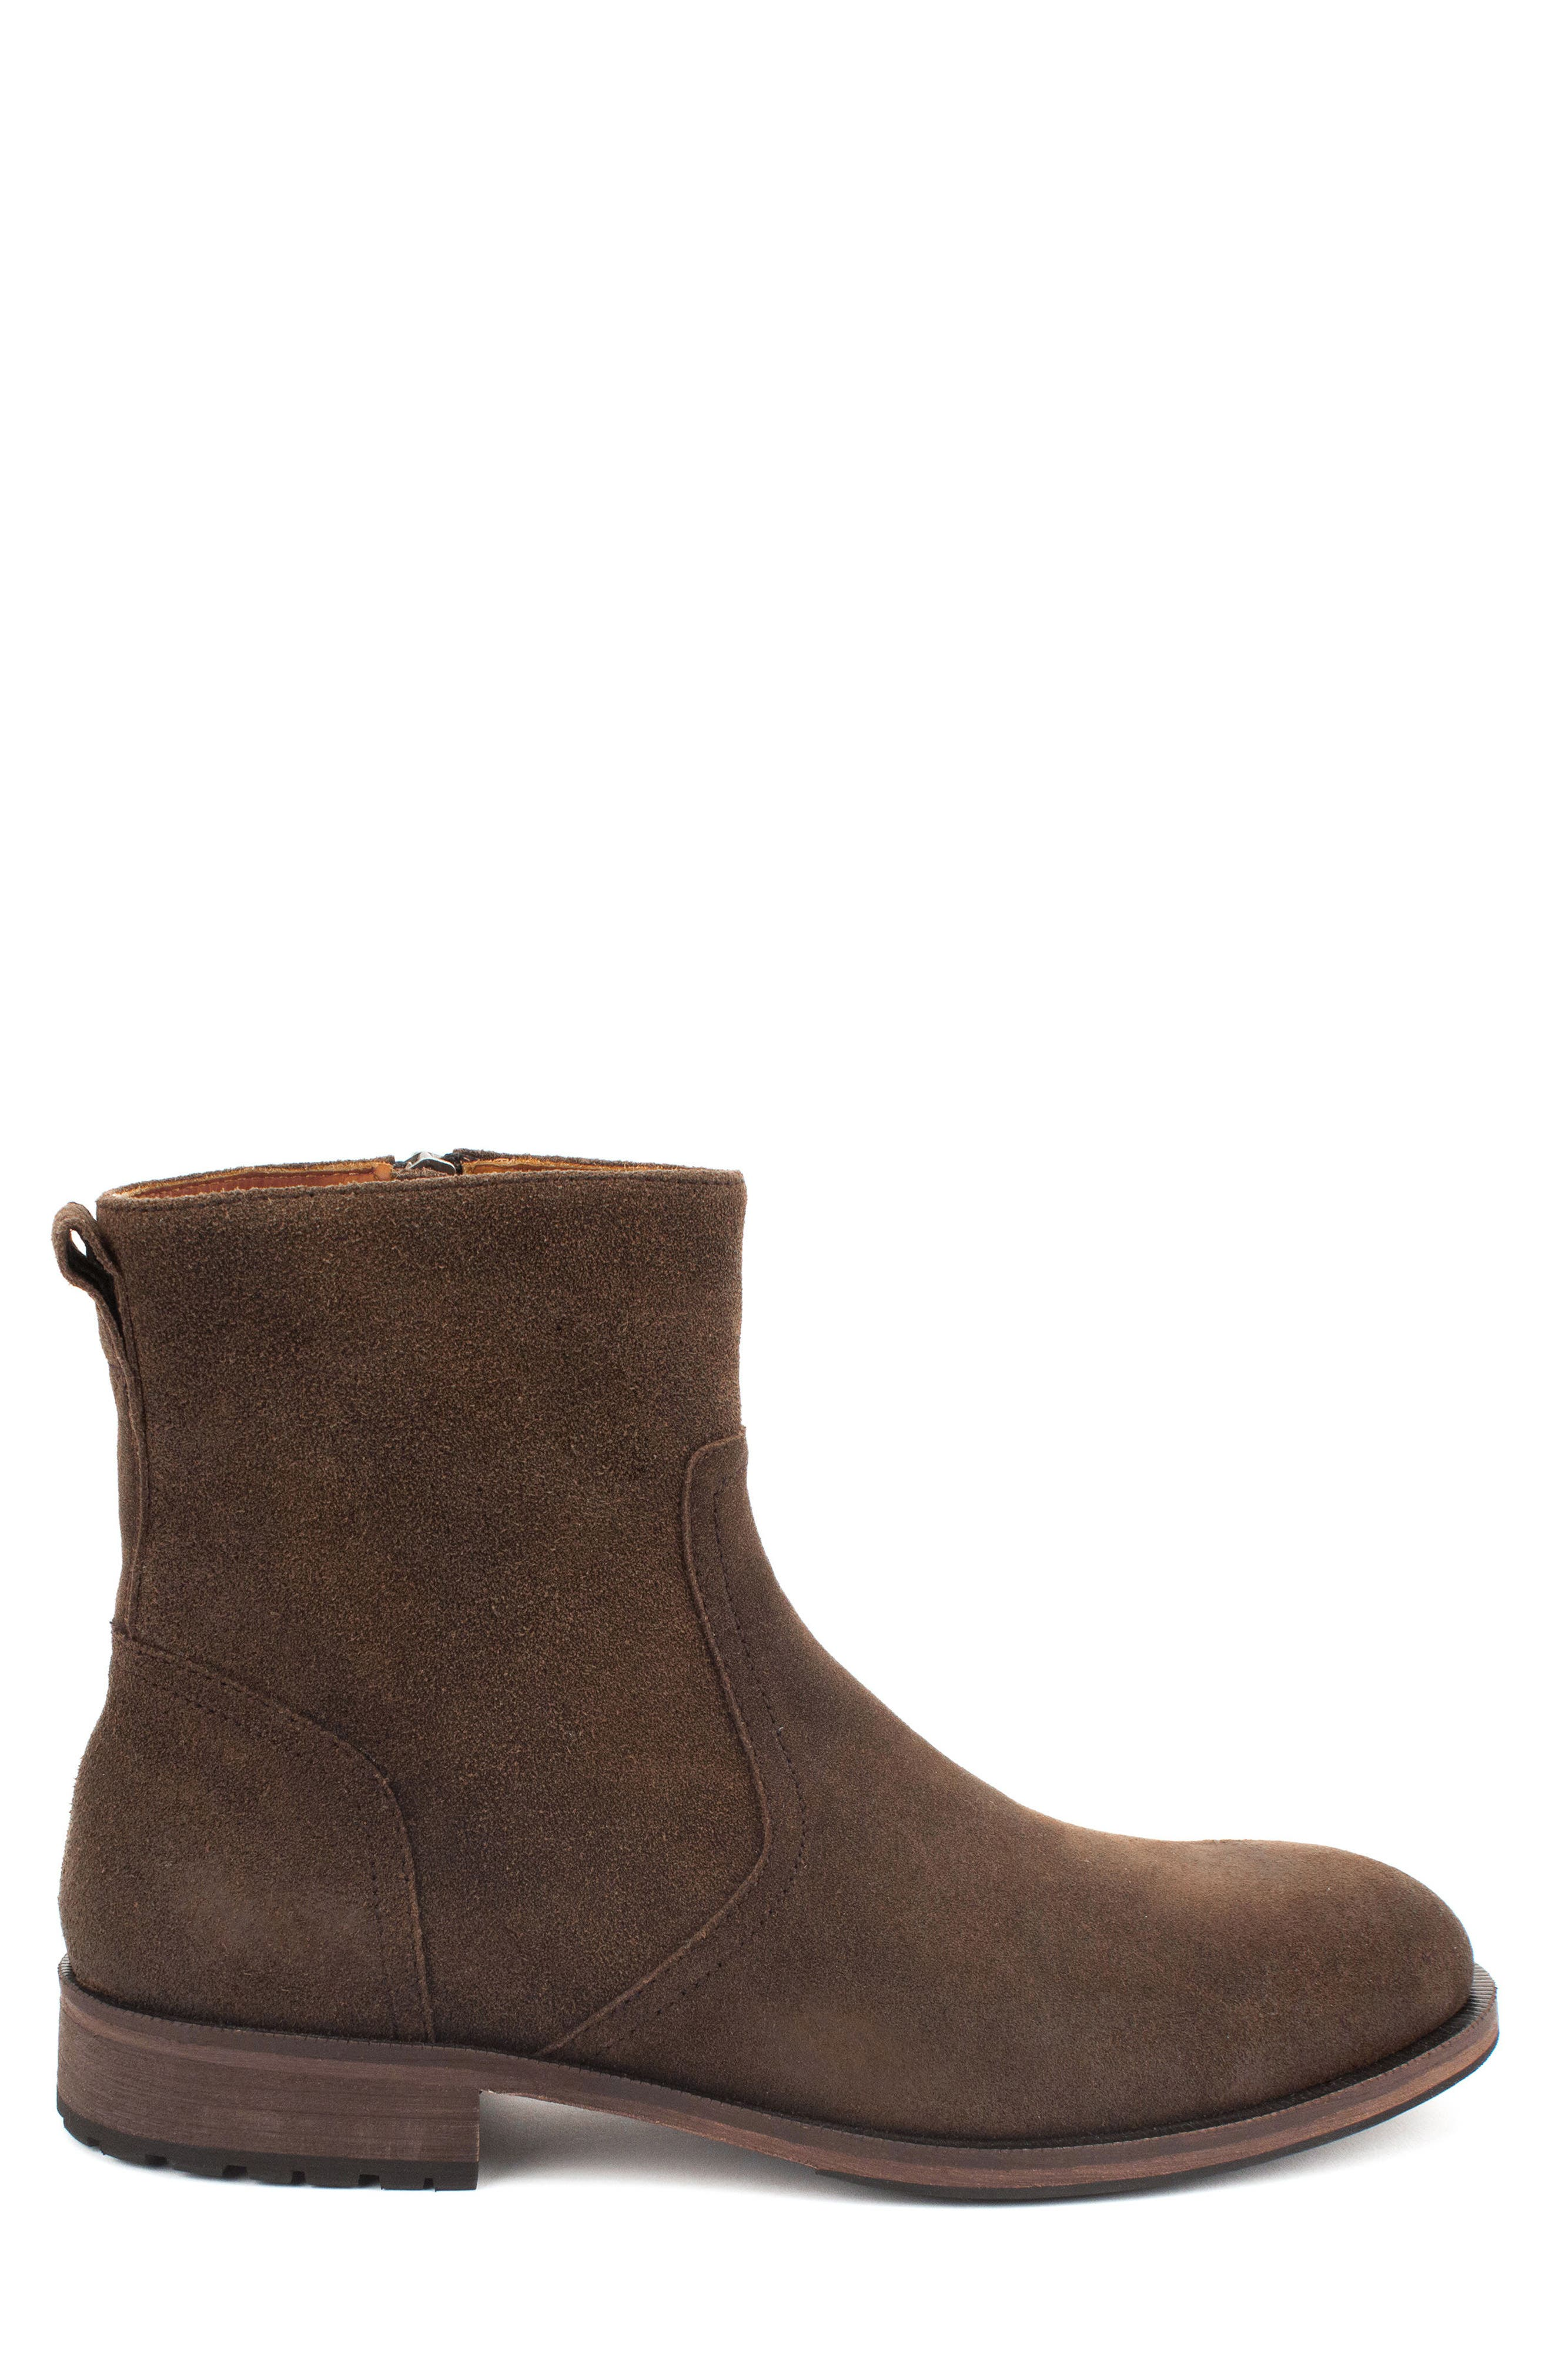 Fayette Plain Toe Zip Boot,                             Alternate thumbnail 3, color,                             CHOCOLATE SUEDE